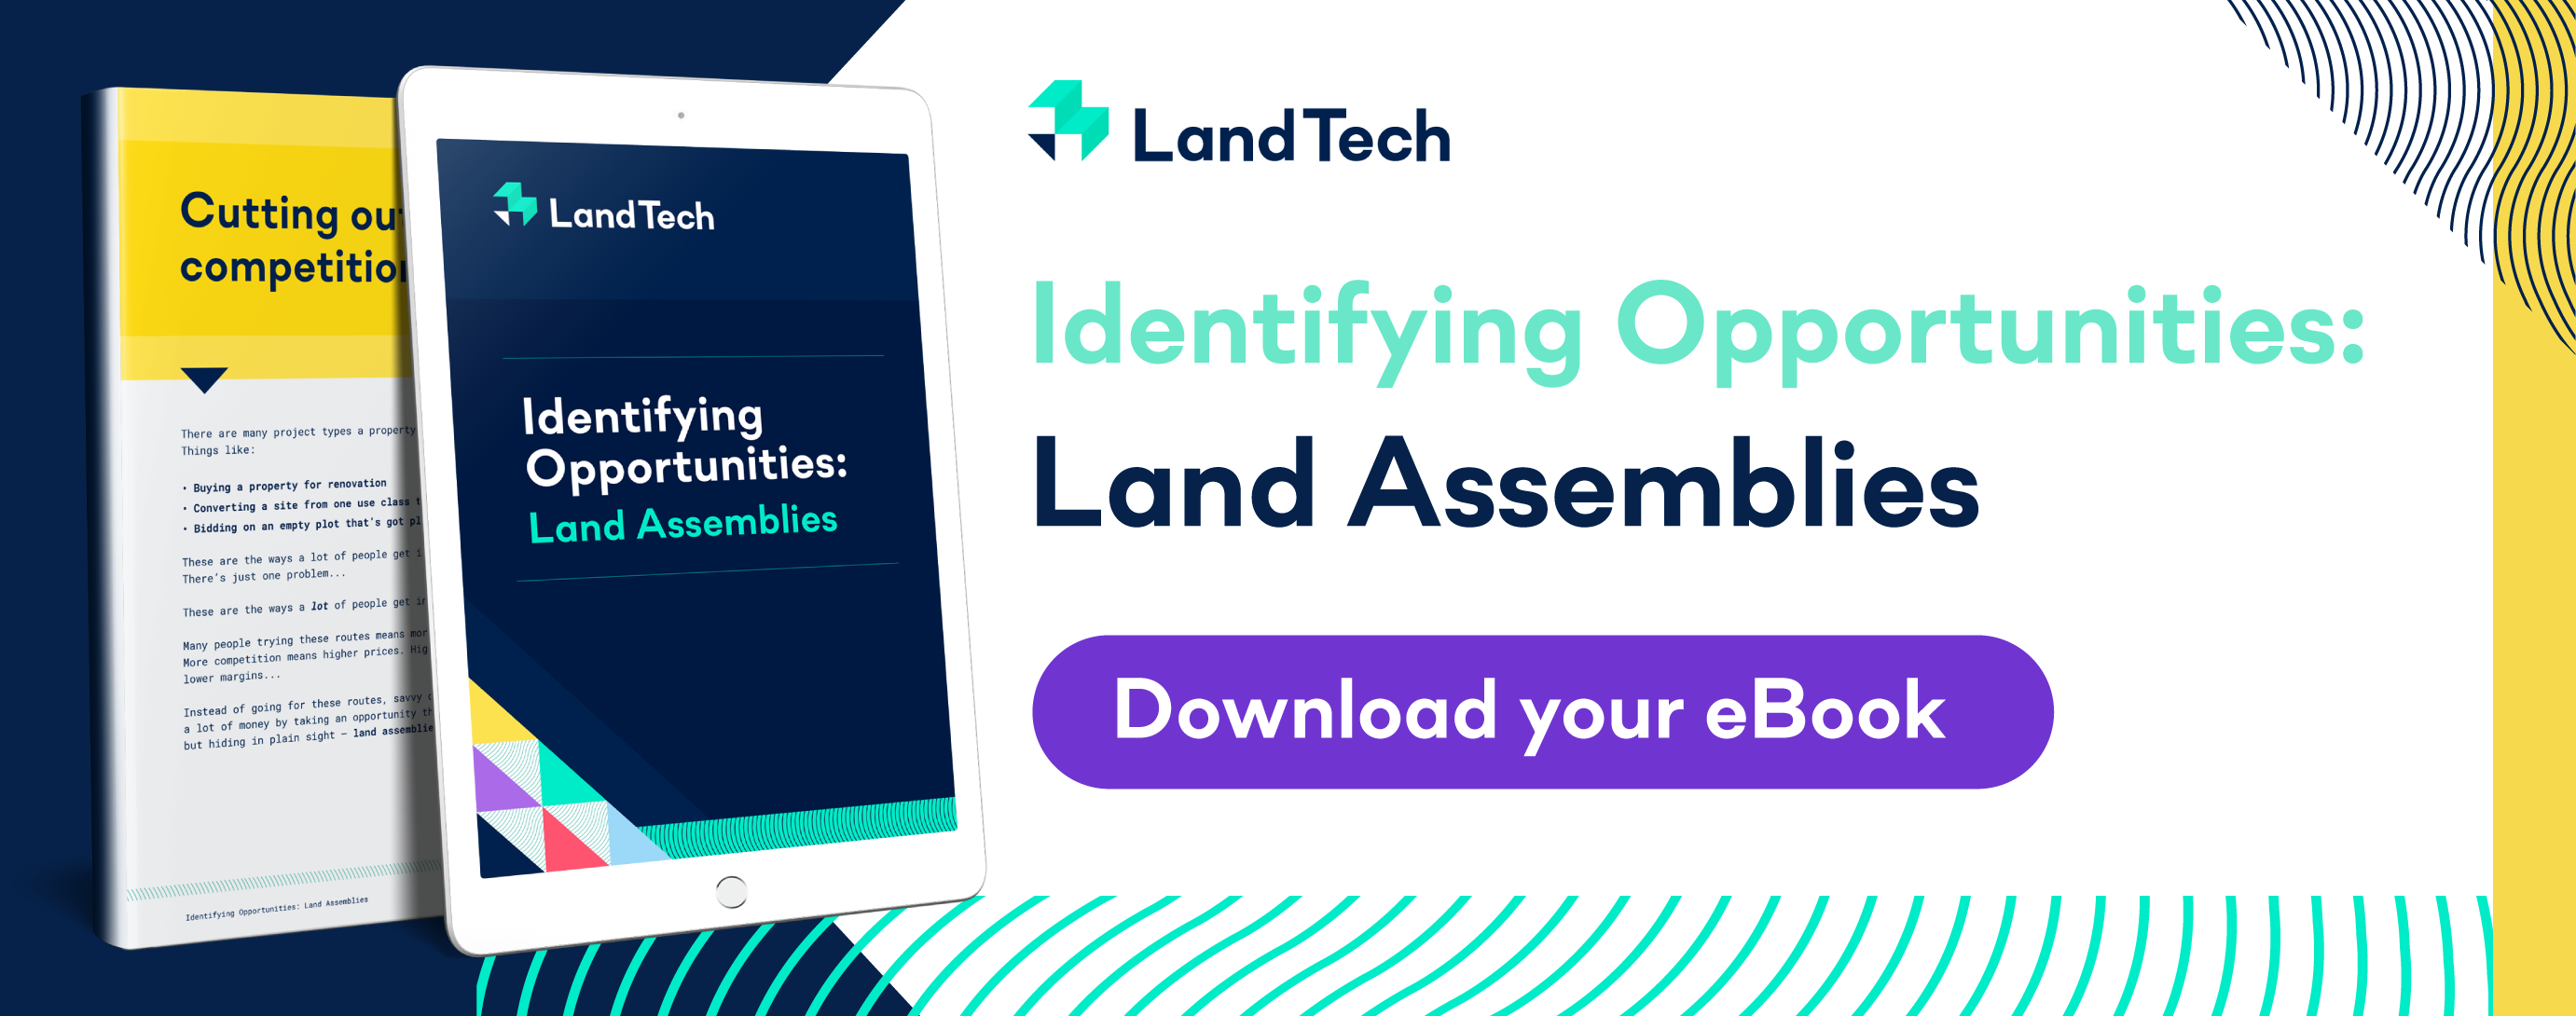 land_assembly_ebook_download-01